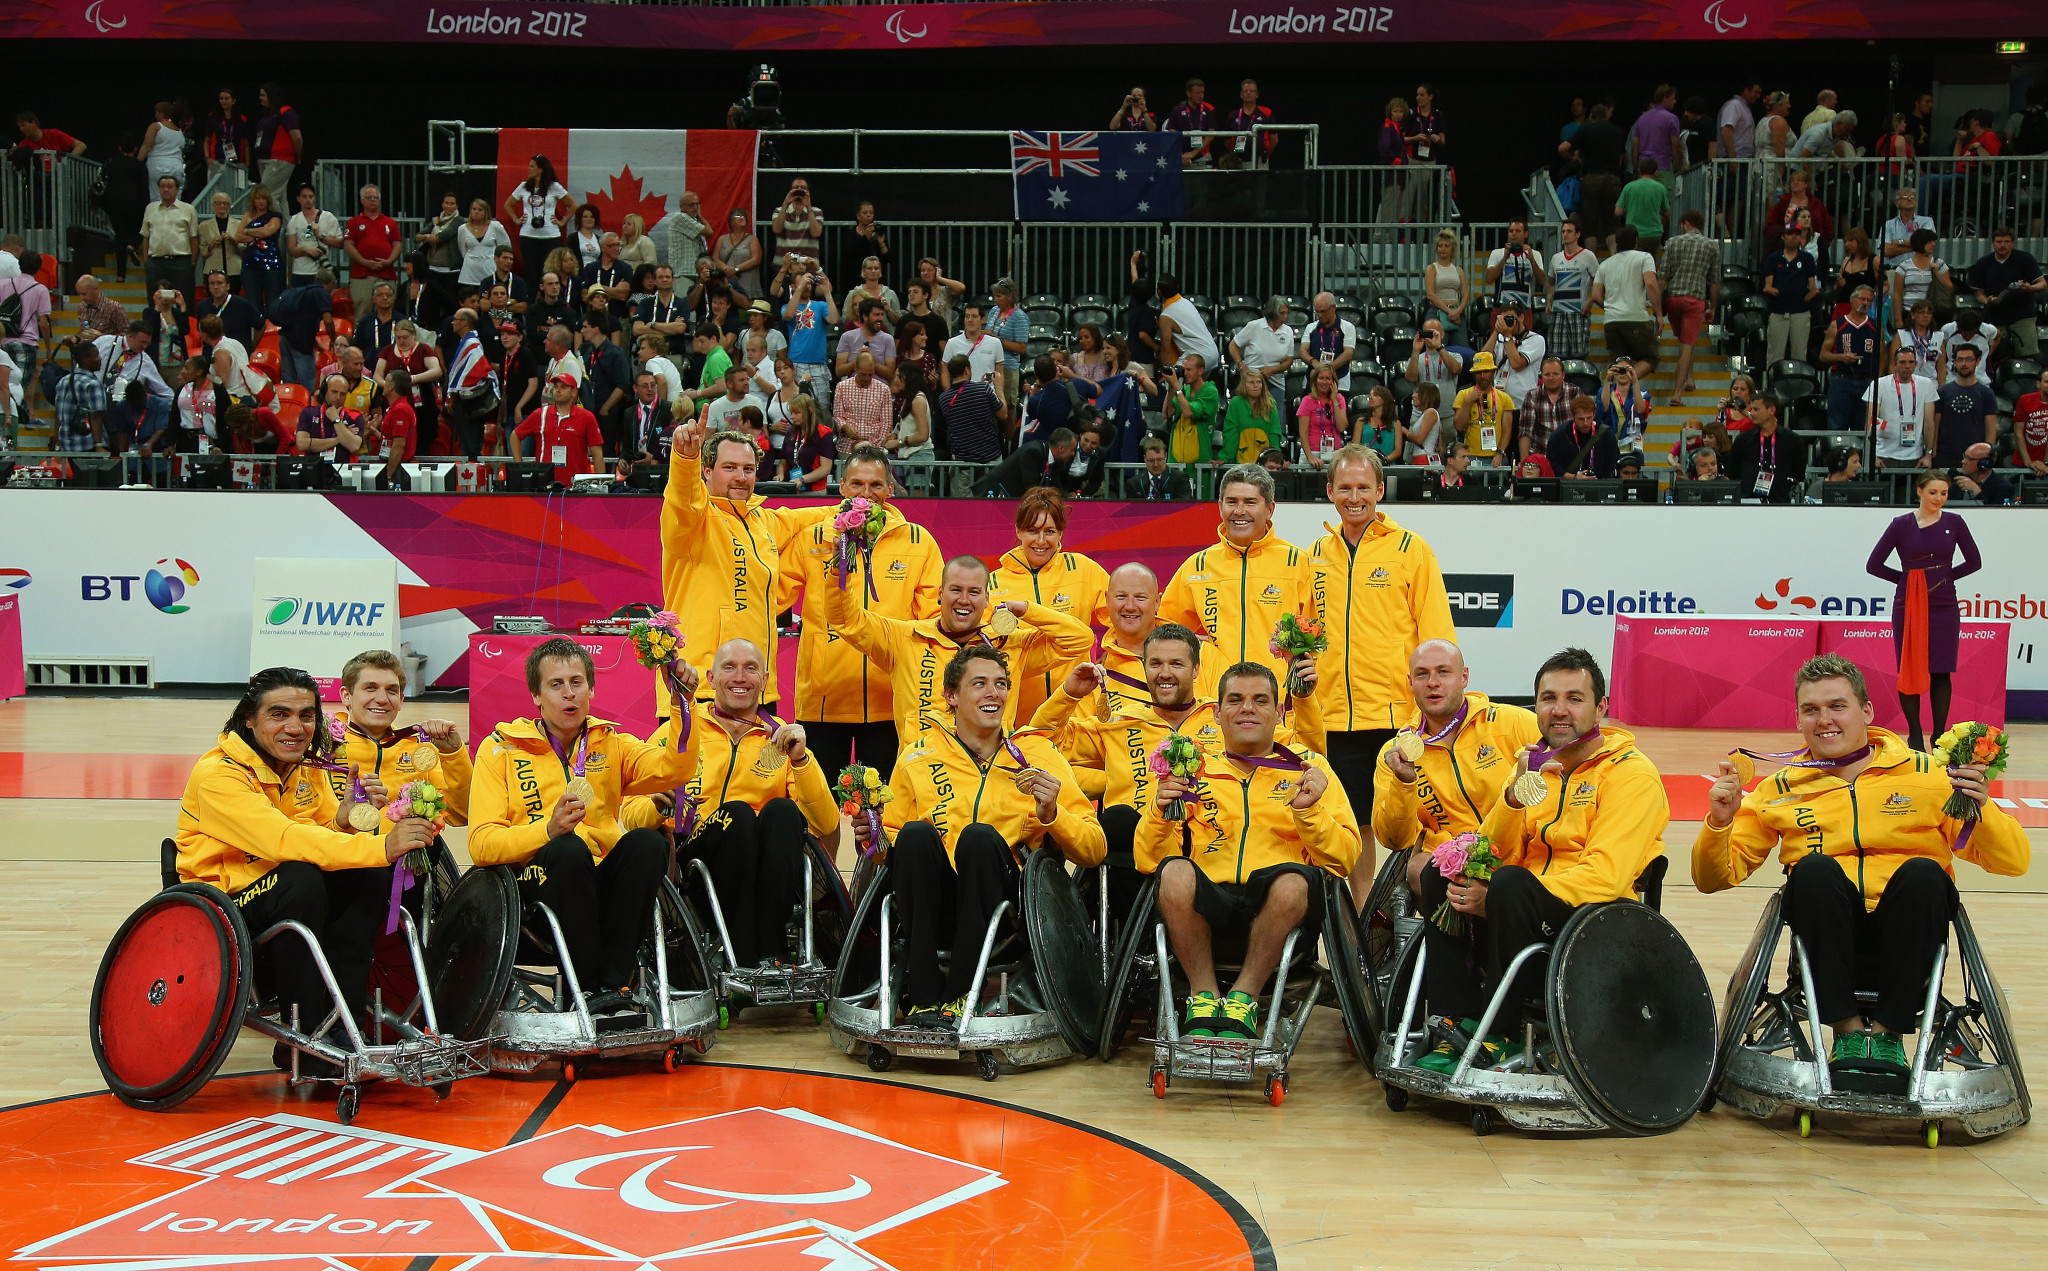 Australia won two wheelchair basketball silver medals at London 2012 ©Getty Images